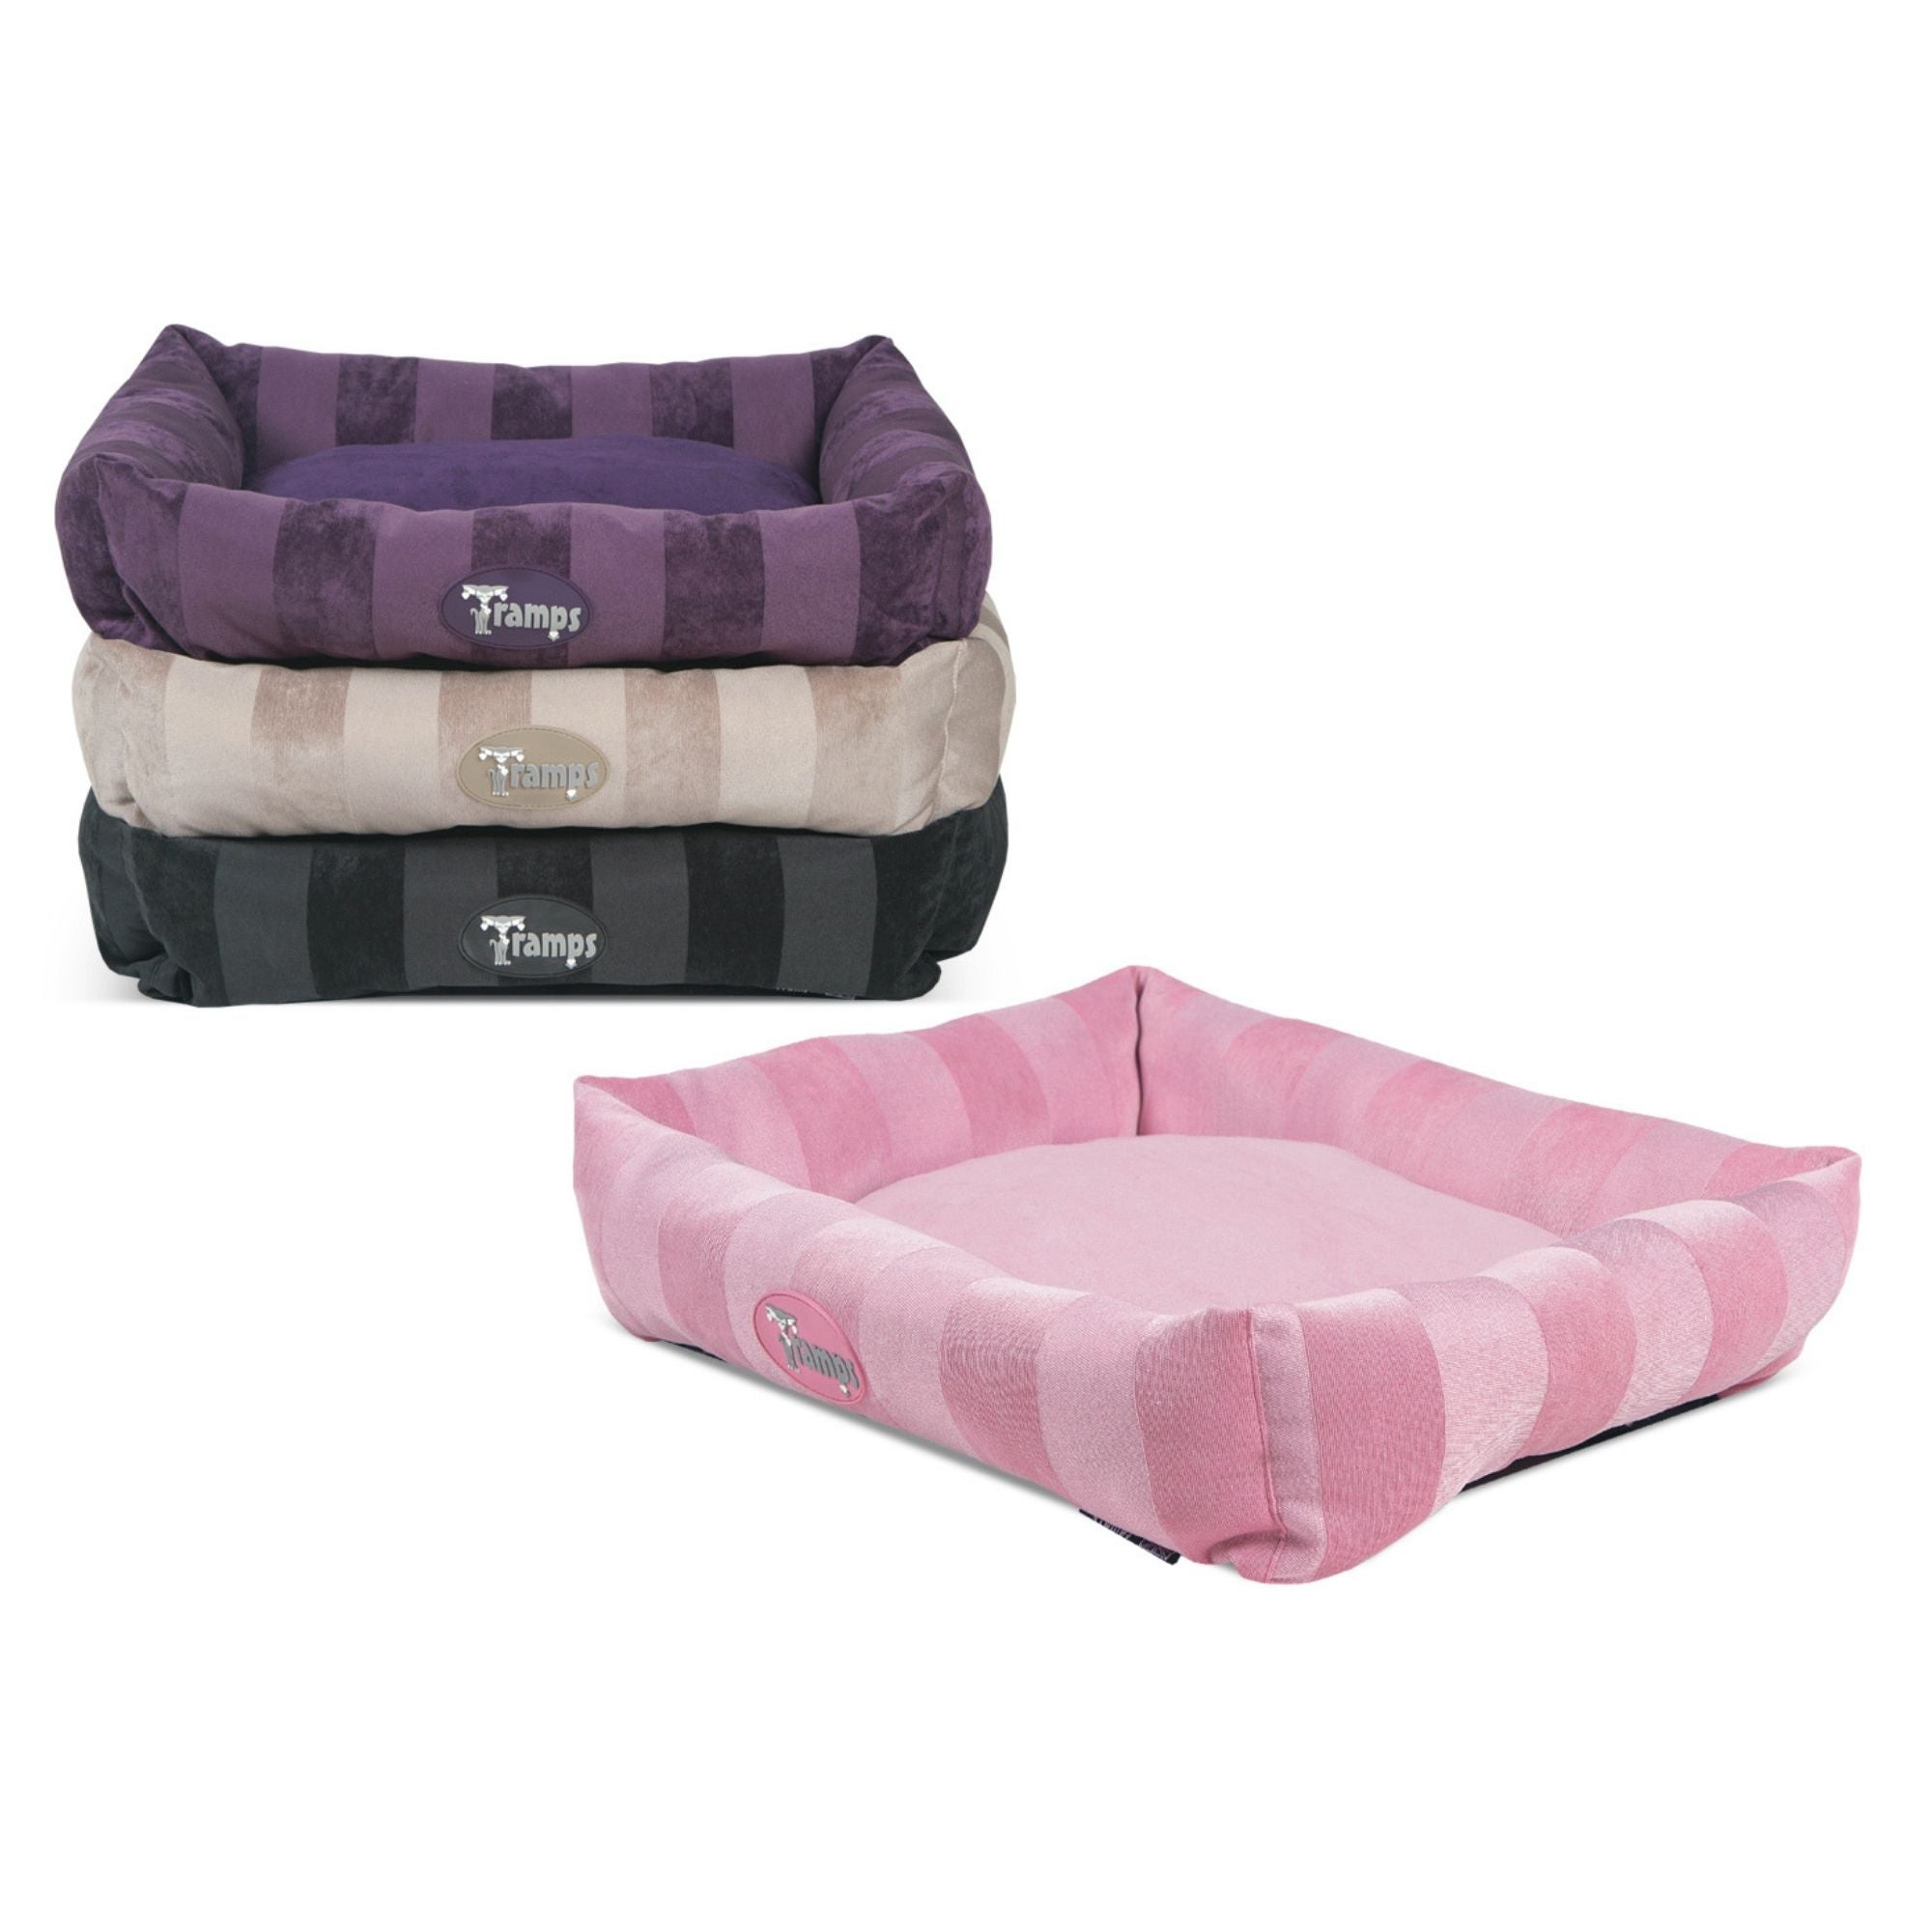 Scruffs ArisoCat Lounger, Extra Small Dog Bed, Cat Bed | Barks & Bunnies